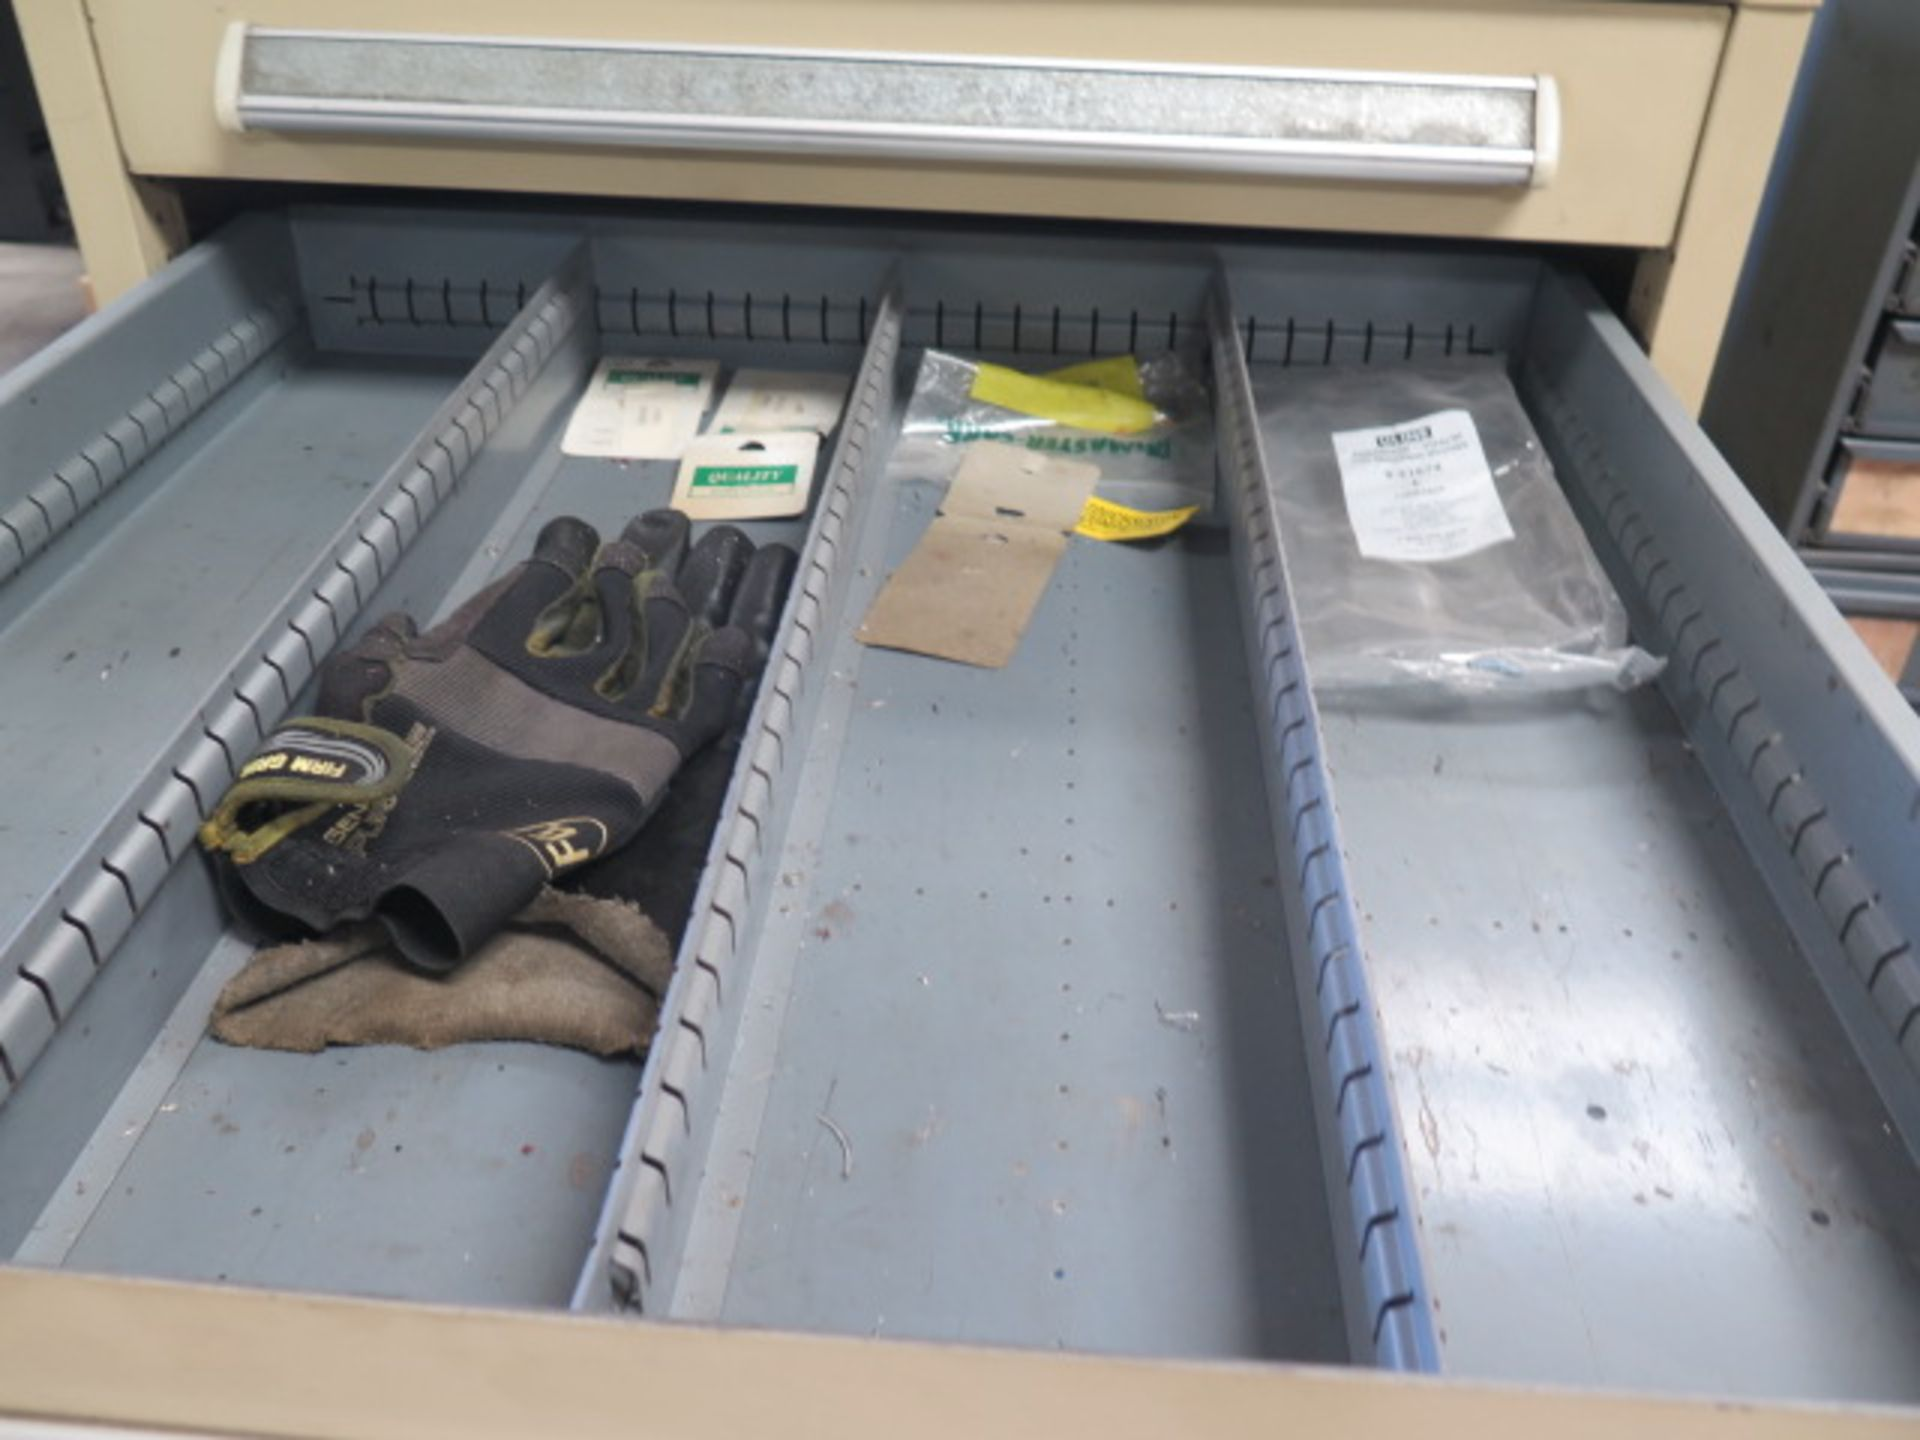 10-Drawer Tooling Cabinet w/ Hardware (SOLD AS-IS - NO WARRANTY) - Image 3 of 10